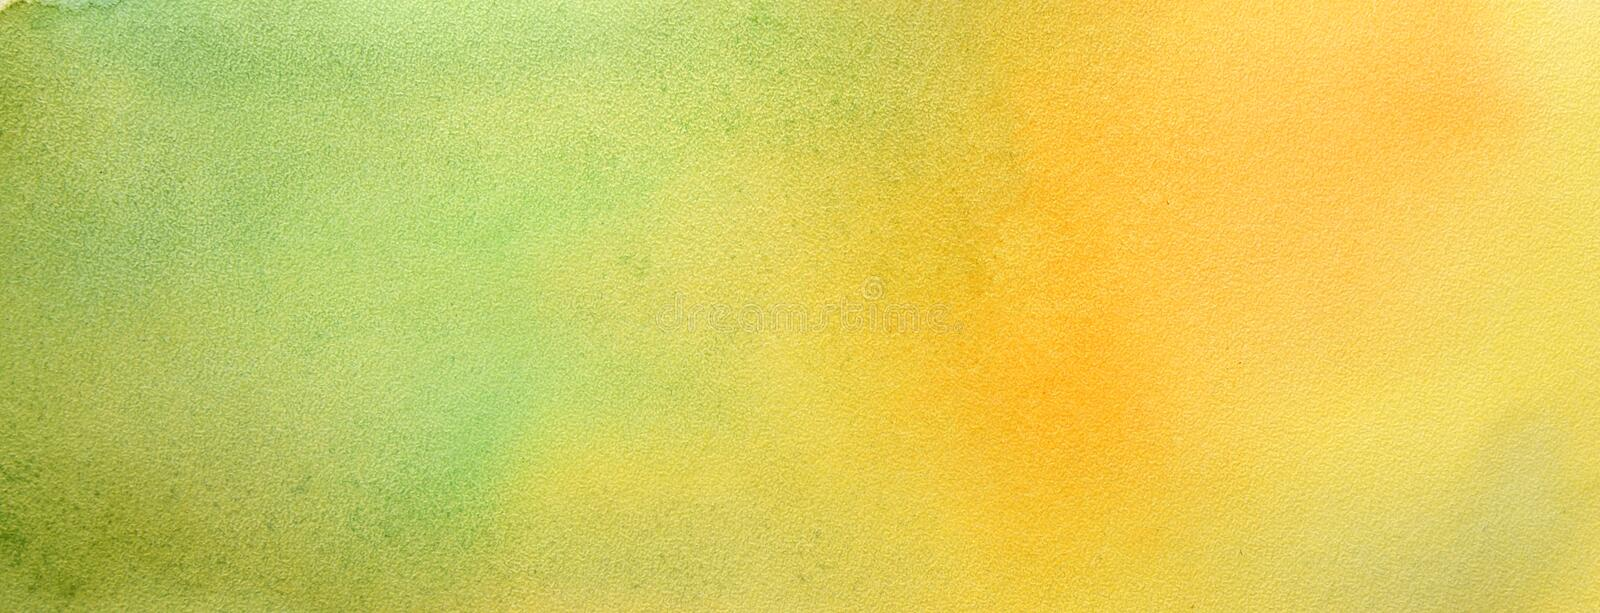 Watercolor hand painted abstract brush strokes pattern. Yellow green gradient background. Autumn colors royalty free stock images